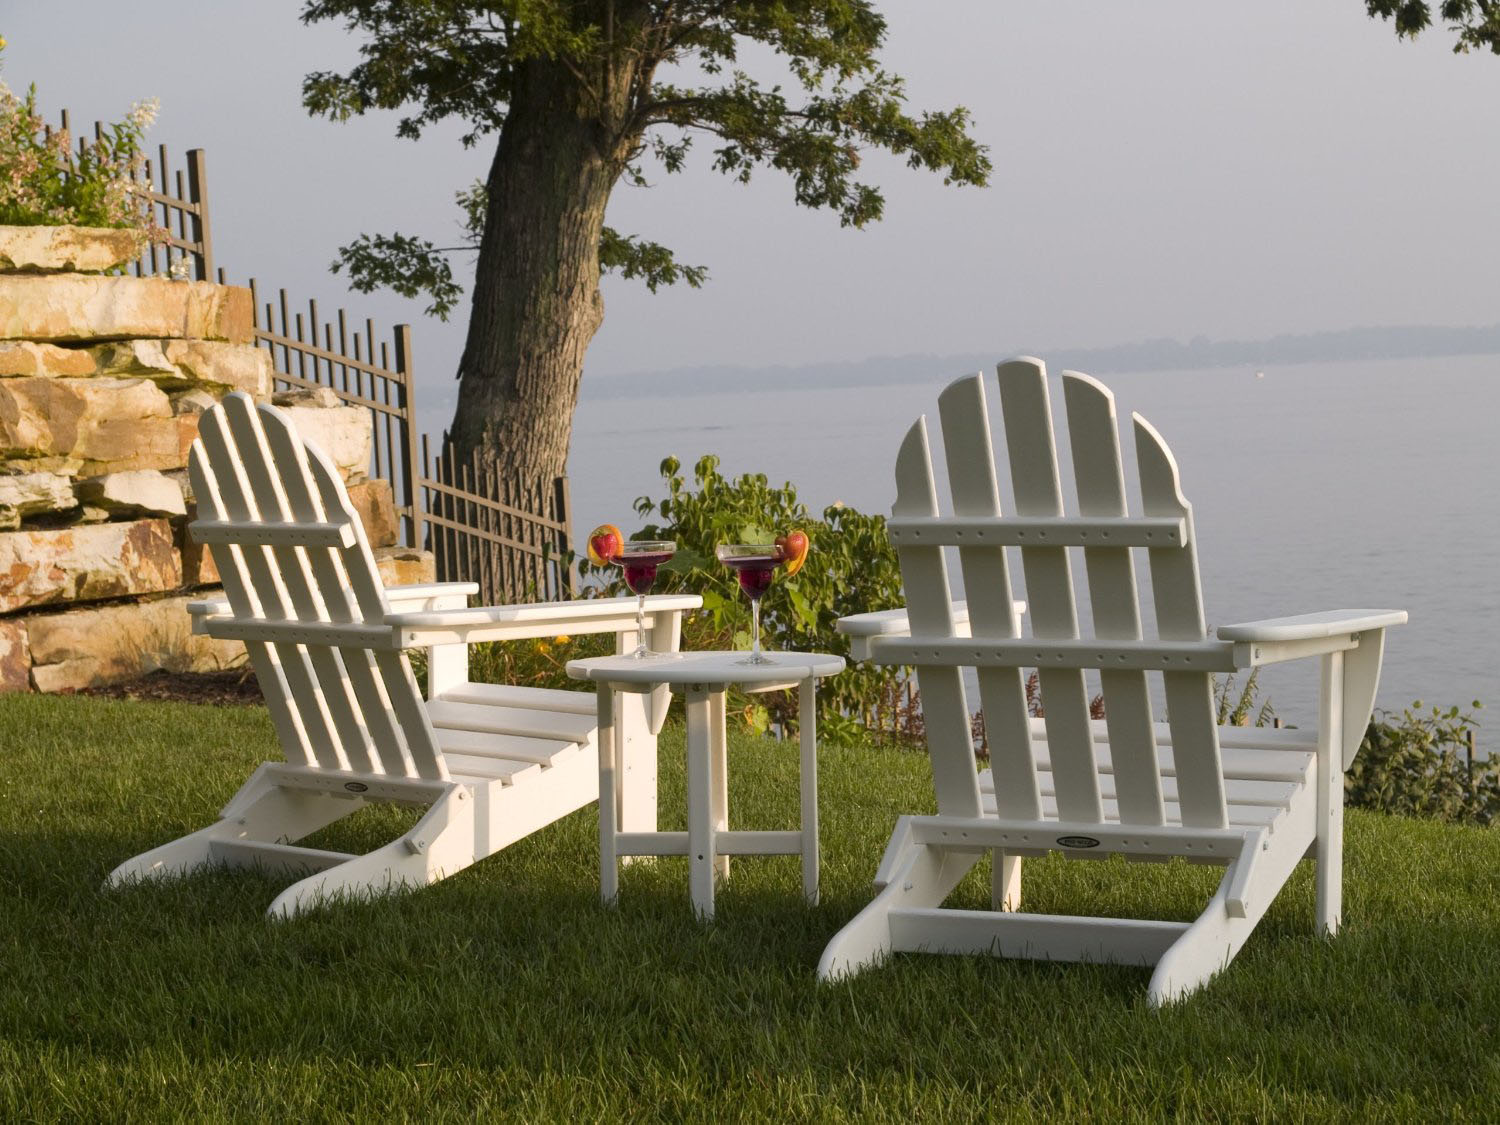 Elegant White Adirondack Chairs Set